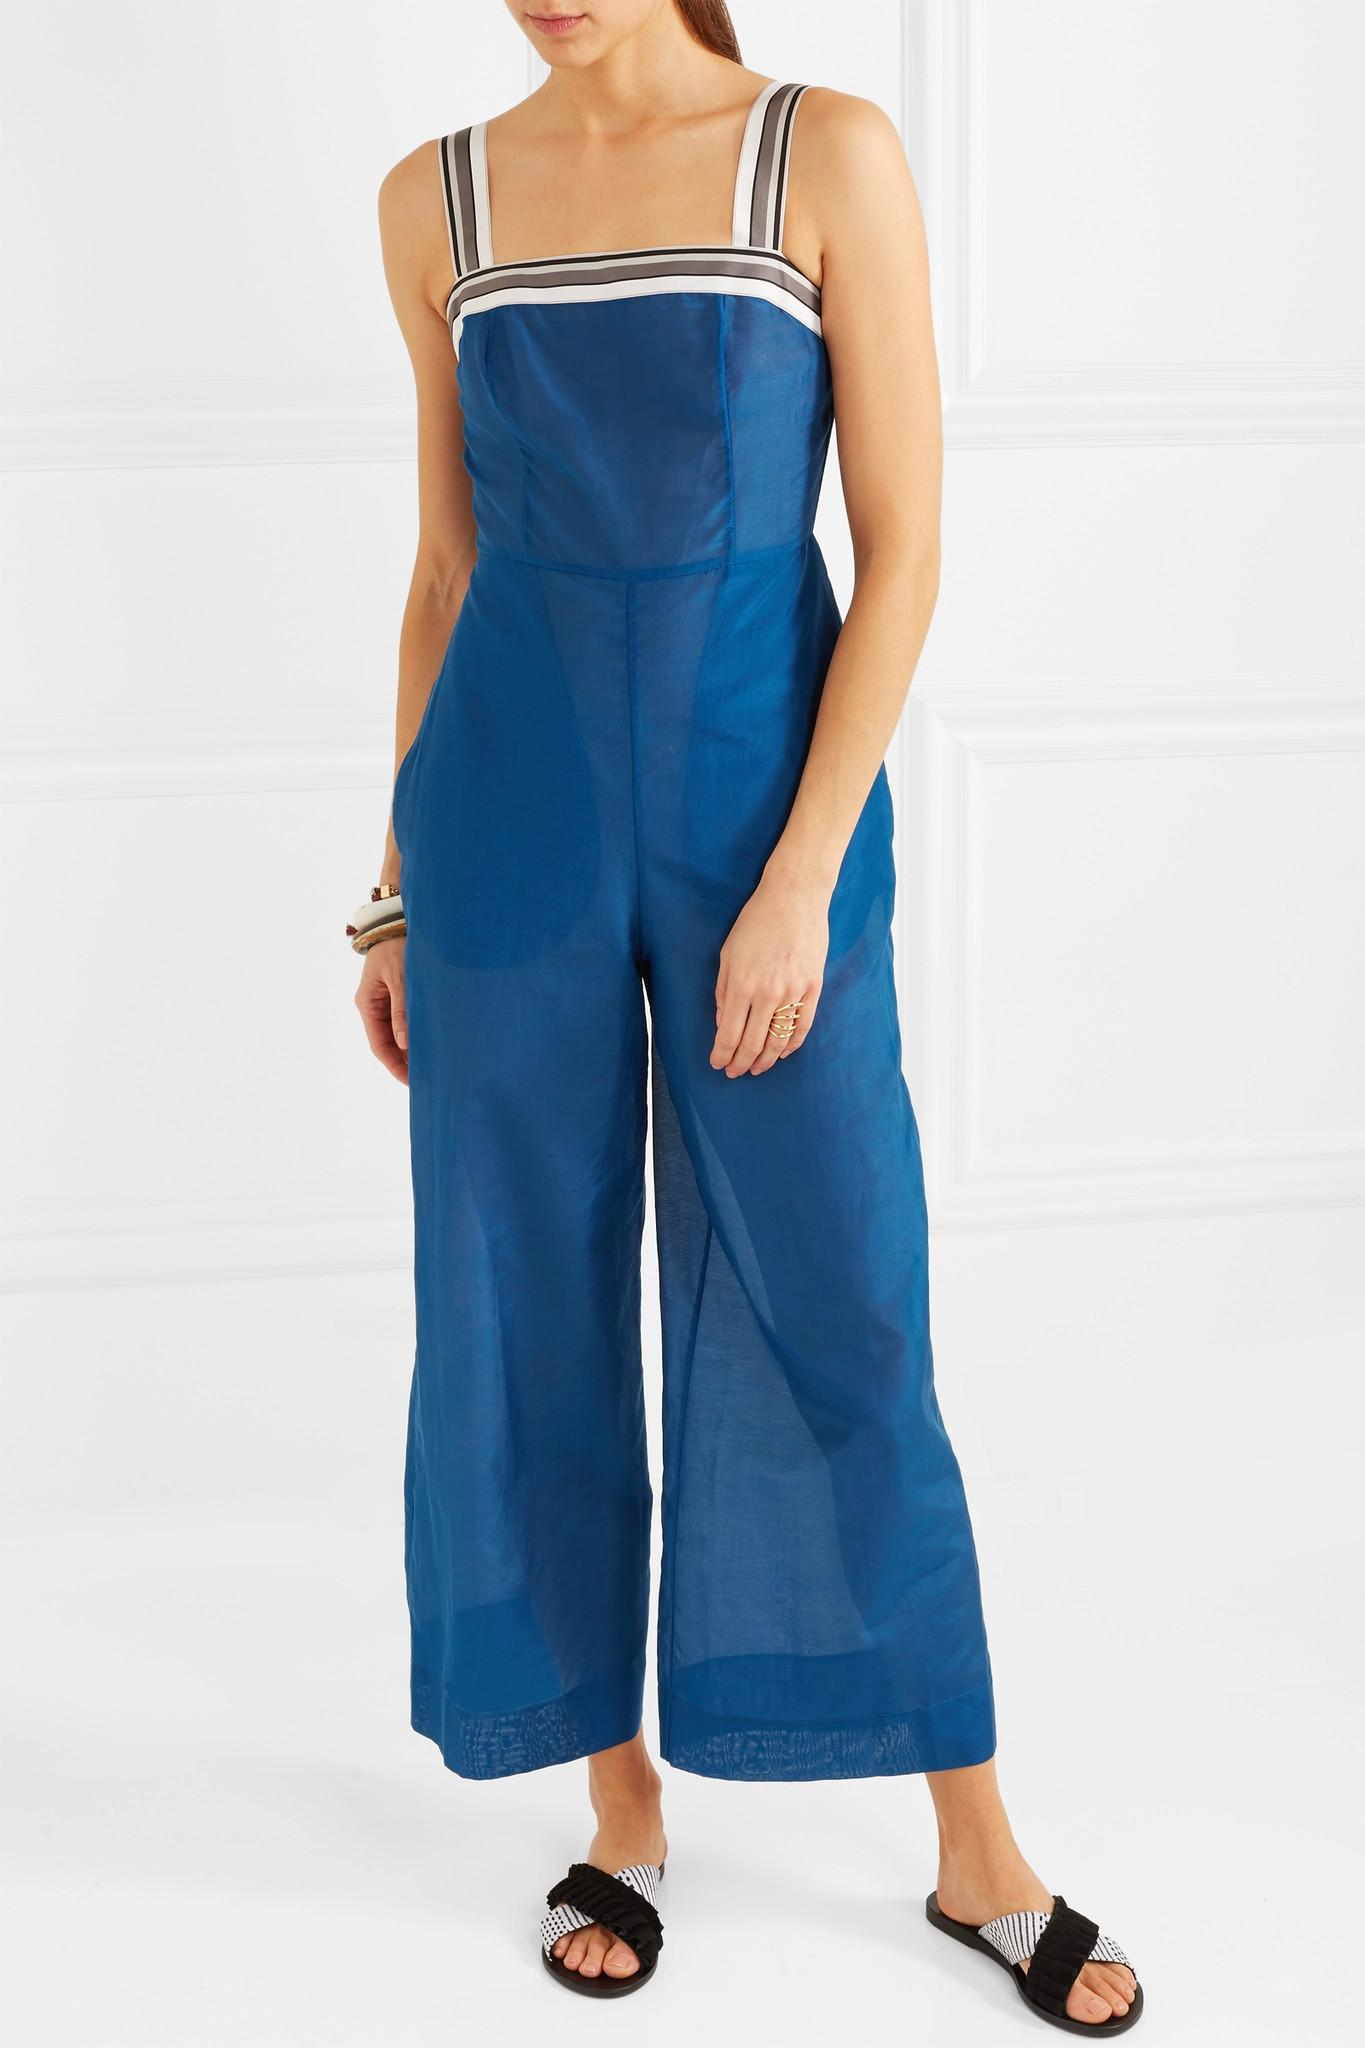 Cheap With Paypal Striped Grosgrain-trimmed Cotton And Silk-blend Jumpsuit - Blue Diane Von Fürstenberg Buy Cheap Pay With Paypal Sale Online Shopping Cheap Factory Outlet Best Place To Buy Lpiph74pzs